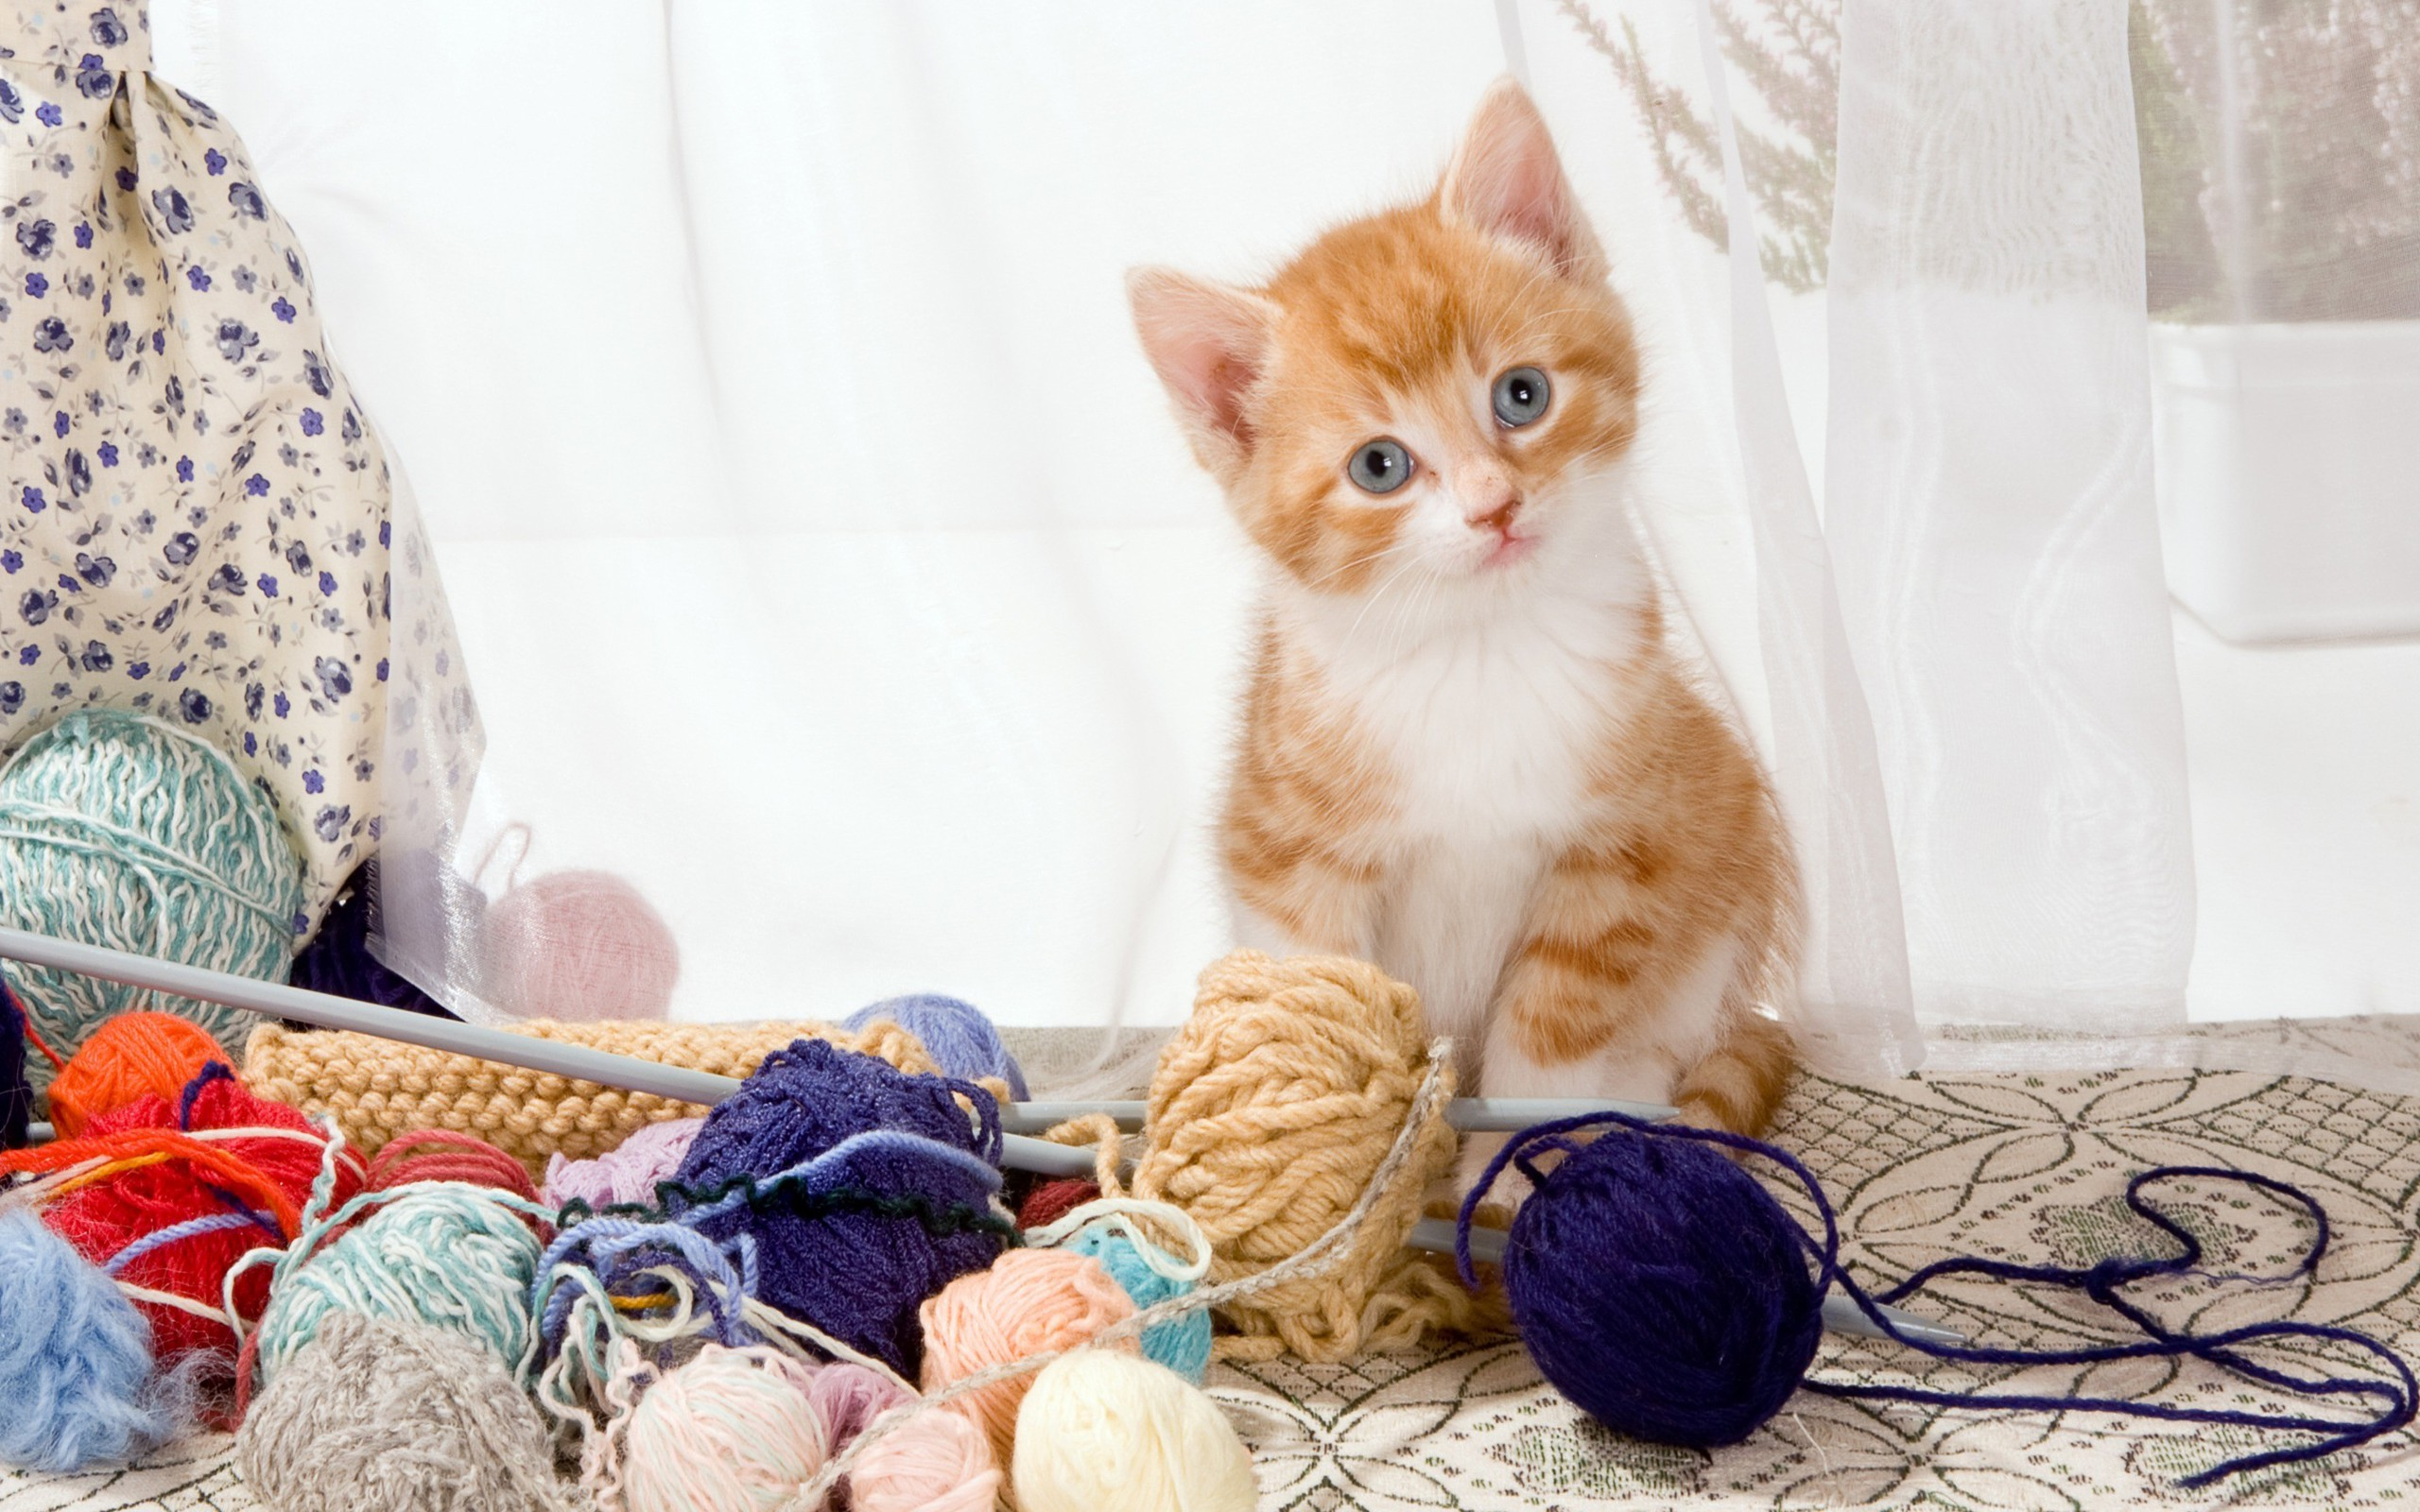 kittens, Cat, Yarn, Animals Wallpapers HD / Desktop and Mobile Backgrounds